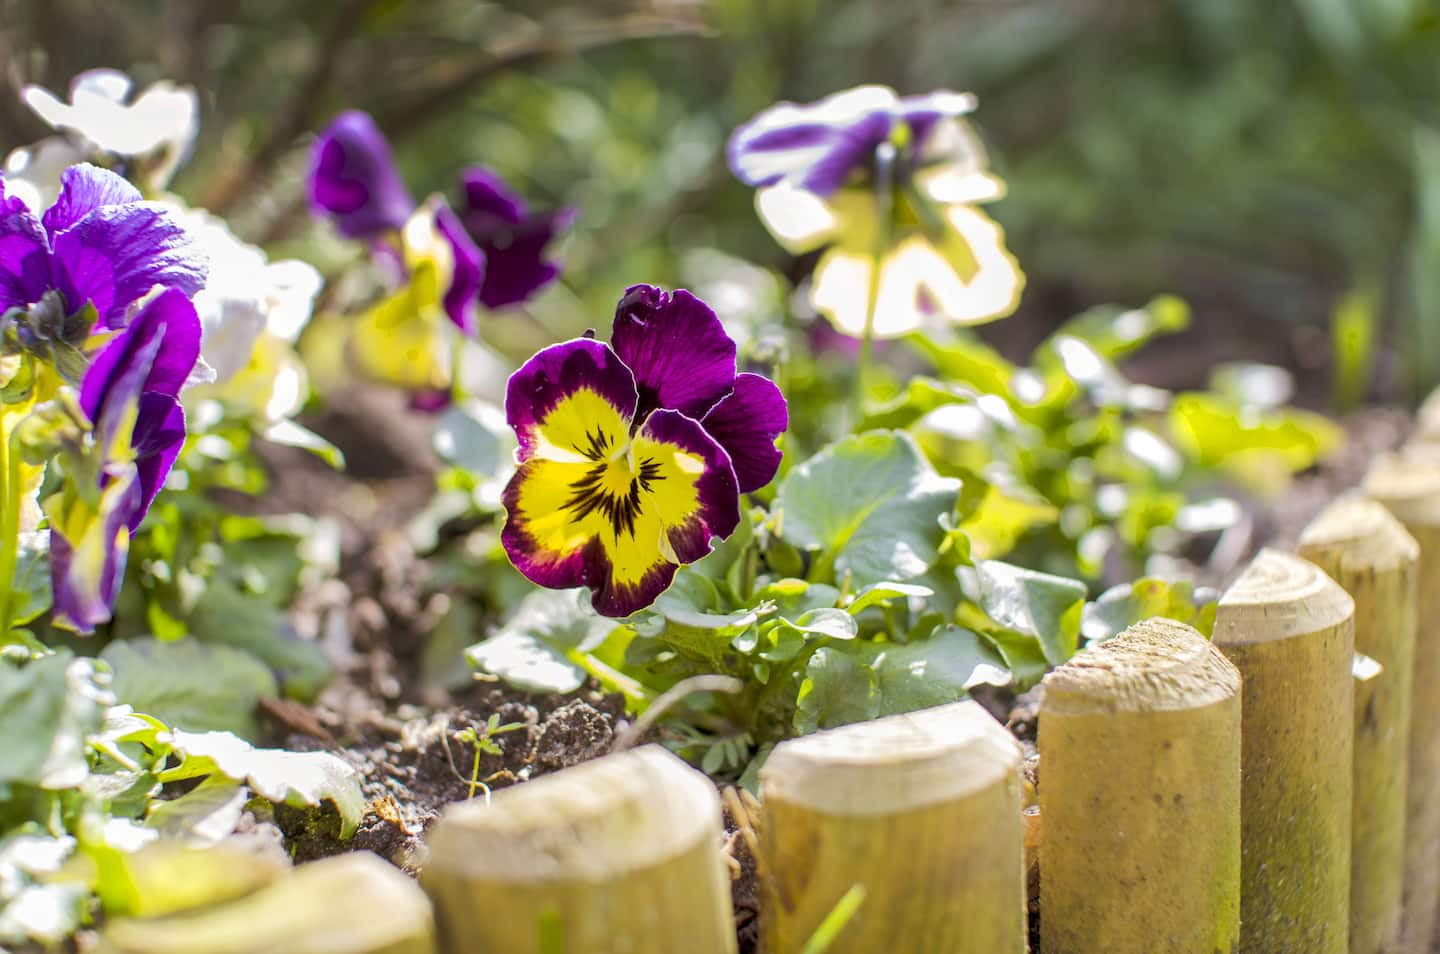 10 Edging Ideas for Flower Beds, Gardens and Landscaping | Angie's ...